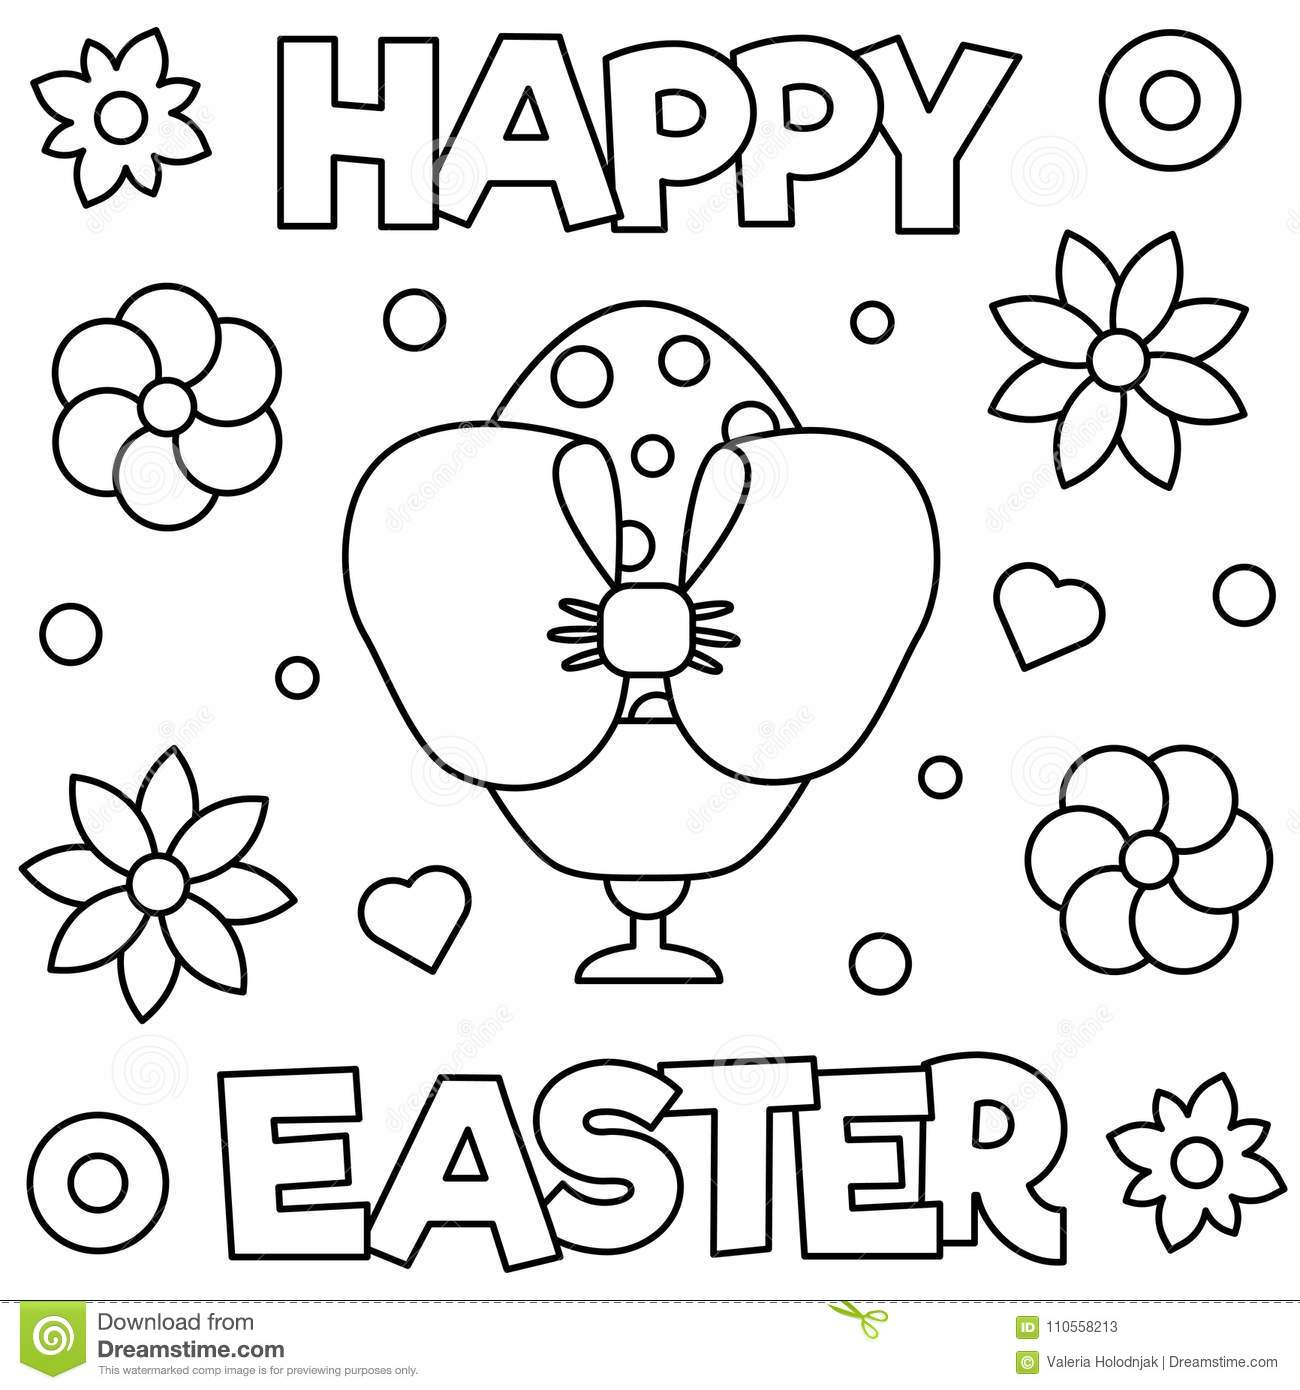 Happy Easter Coloring Page Vector Illustration Stock